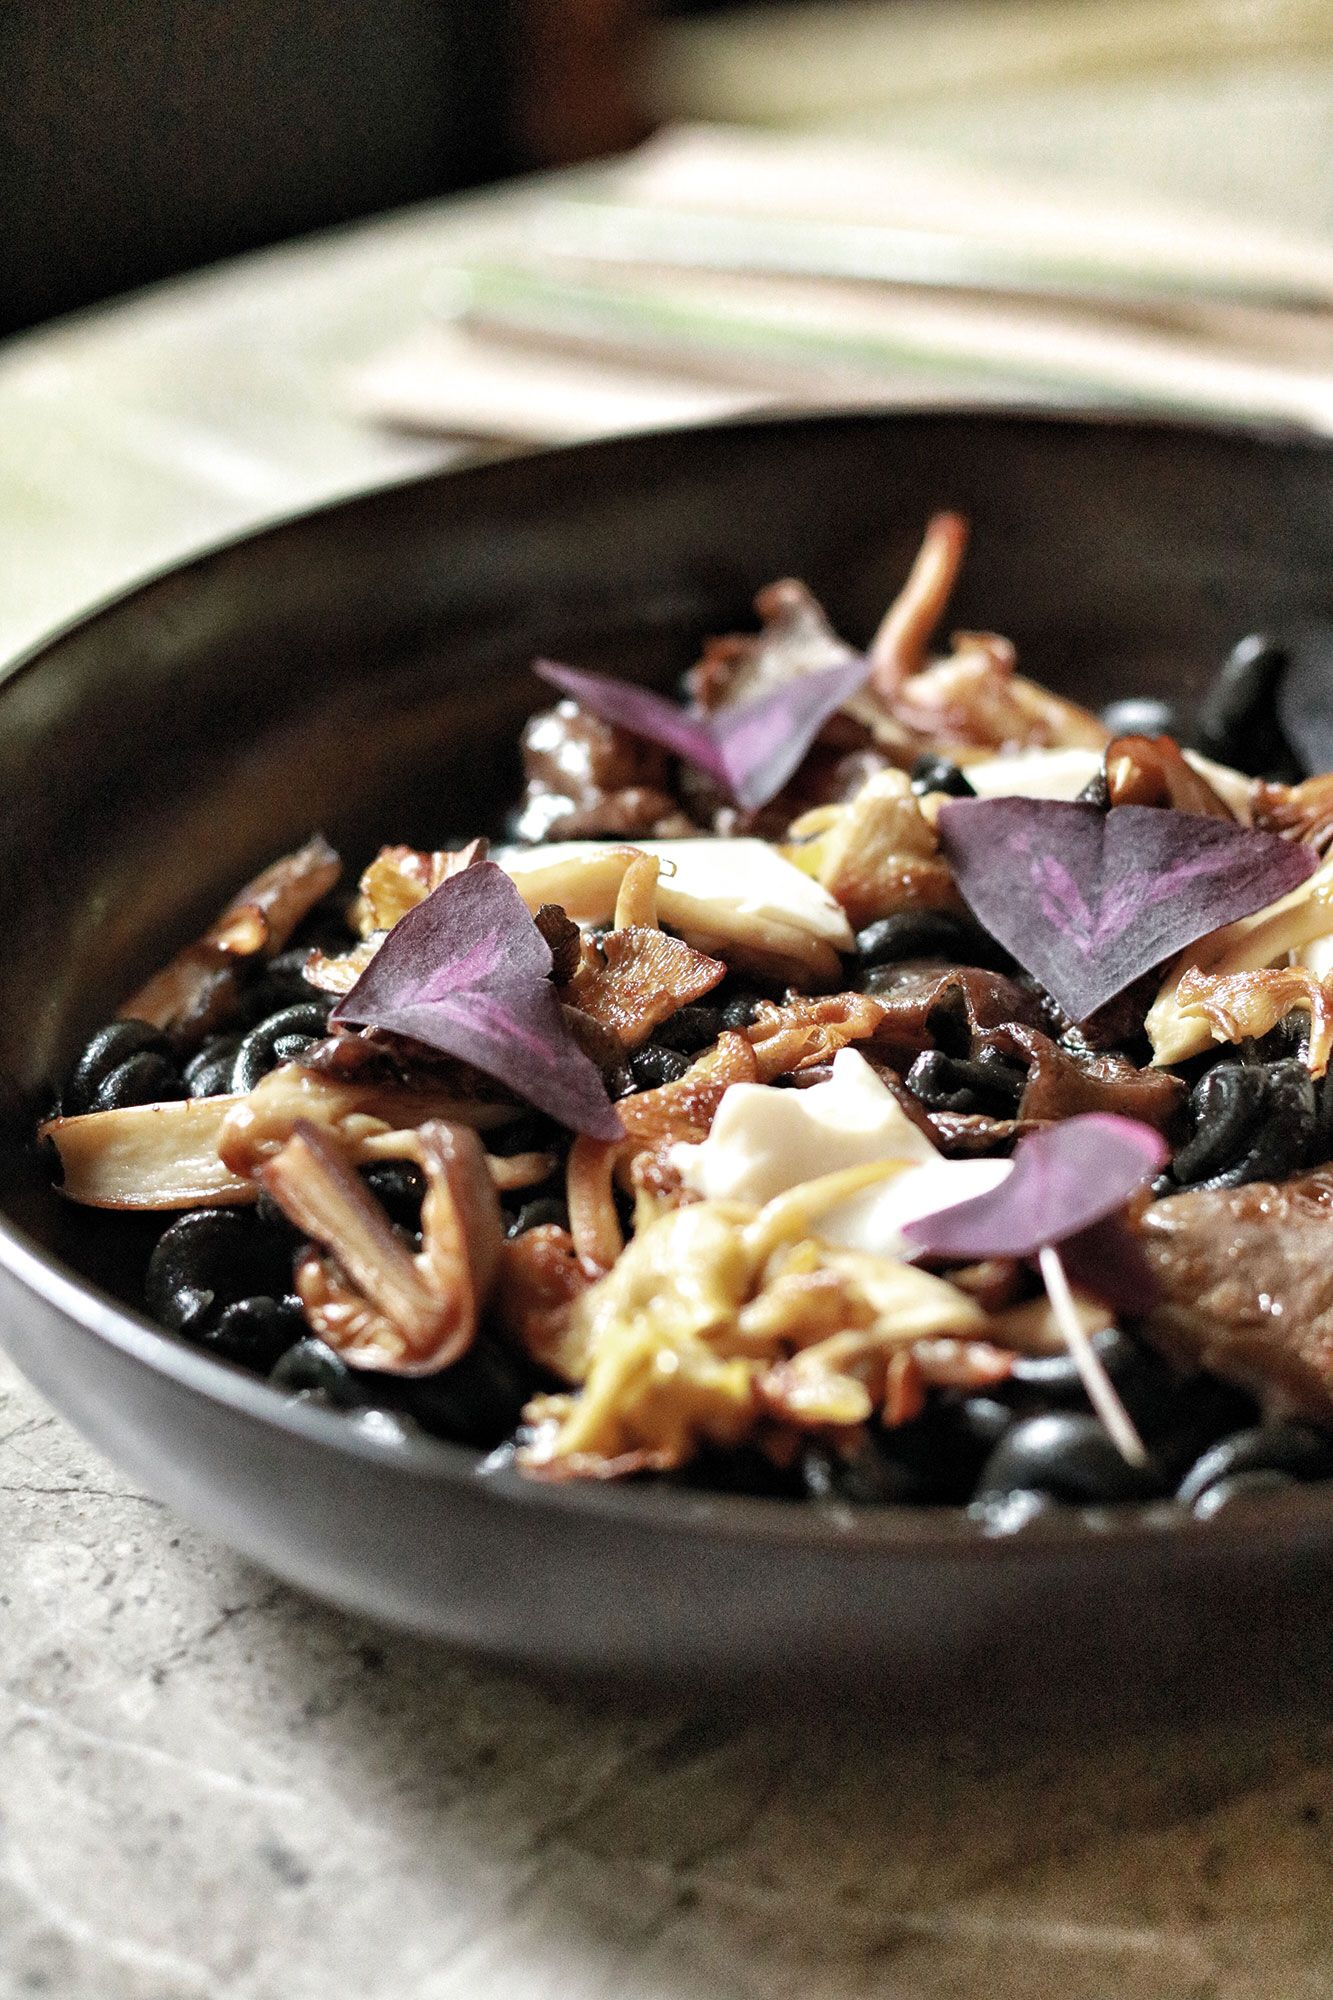 Fermented black beans topped with purple butterfly sorrel (Photo courtesy of Open Farm Community)